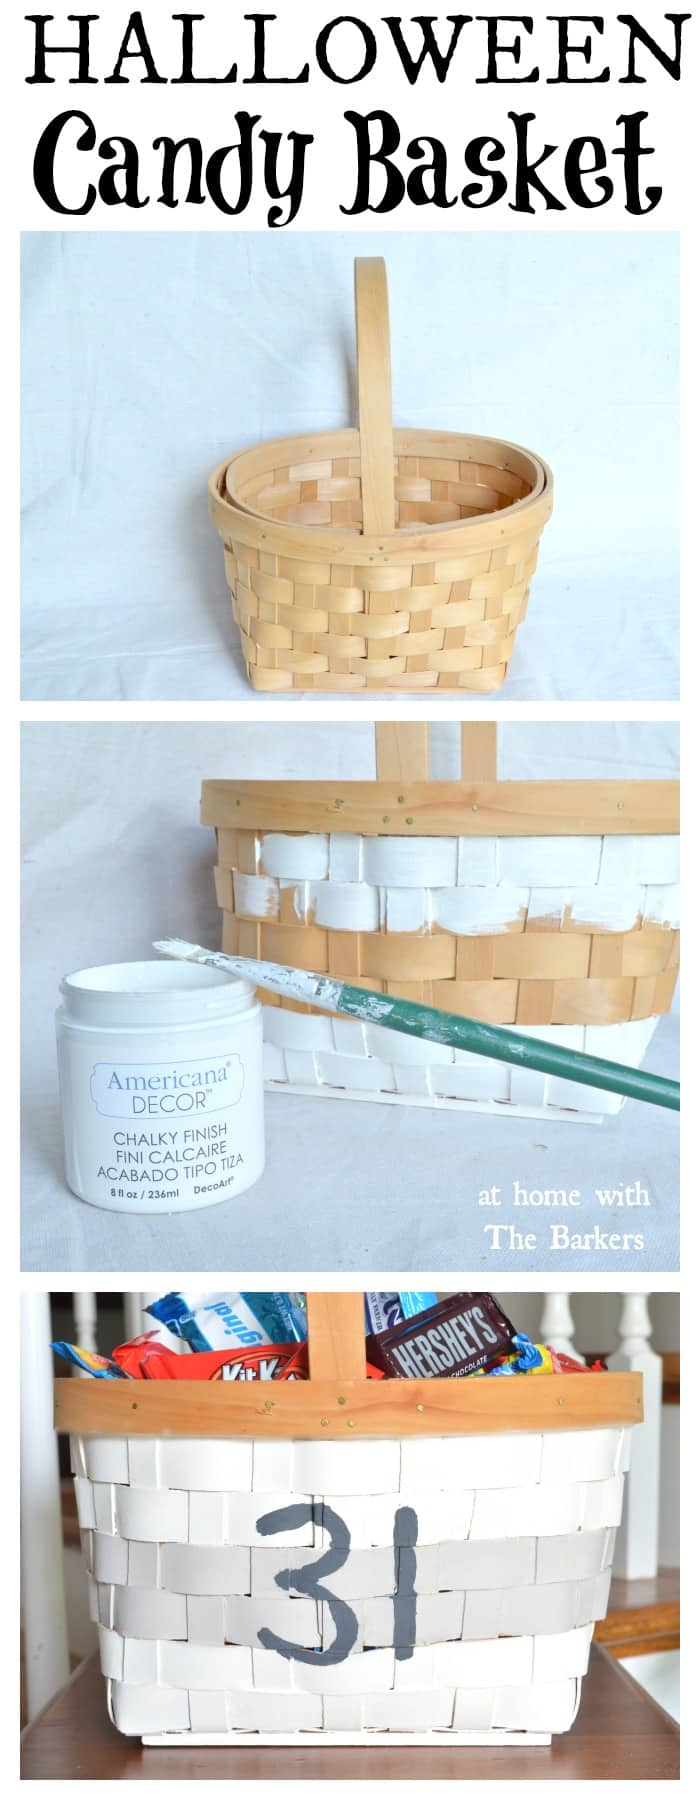 DIY Painted Halloween Candy Basket / athomewiththebarkers.com